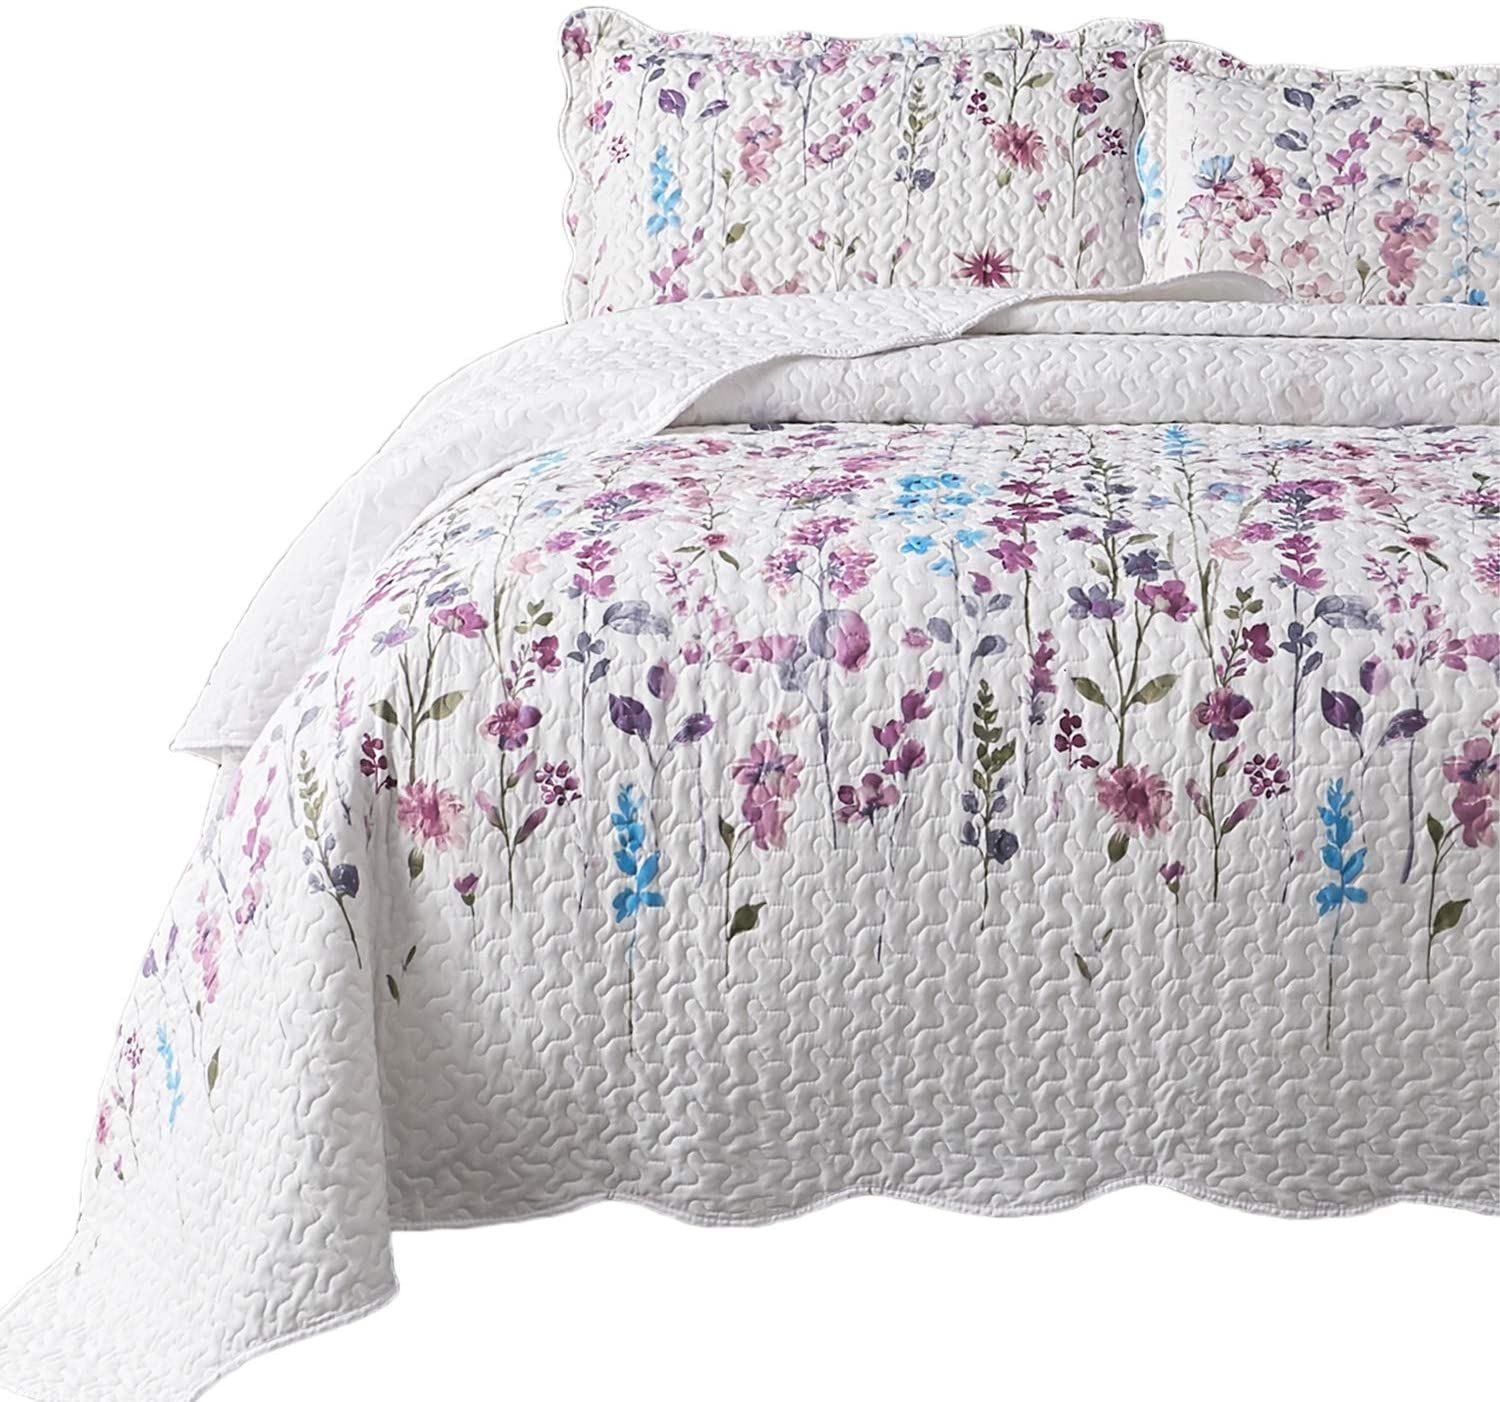 Bedsure Queen Full Size 90x96 Inches 3 Piece Quilt Set Coverlet Lilac Flower Pattern Lightwe In 2020 Quilt Sets King Size Quilt Coverlet Set